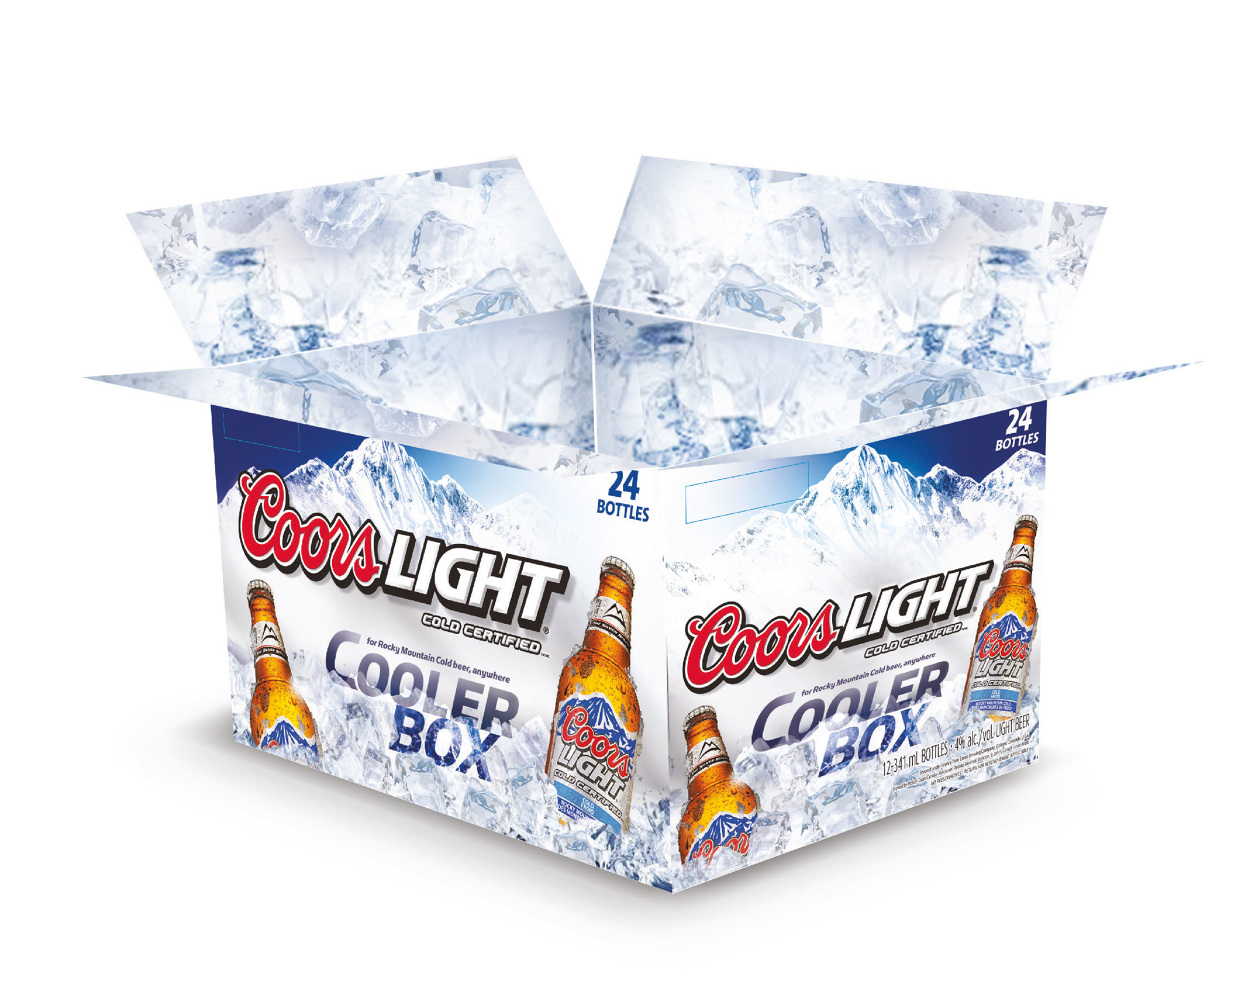 coors light cooler box